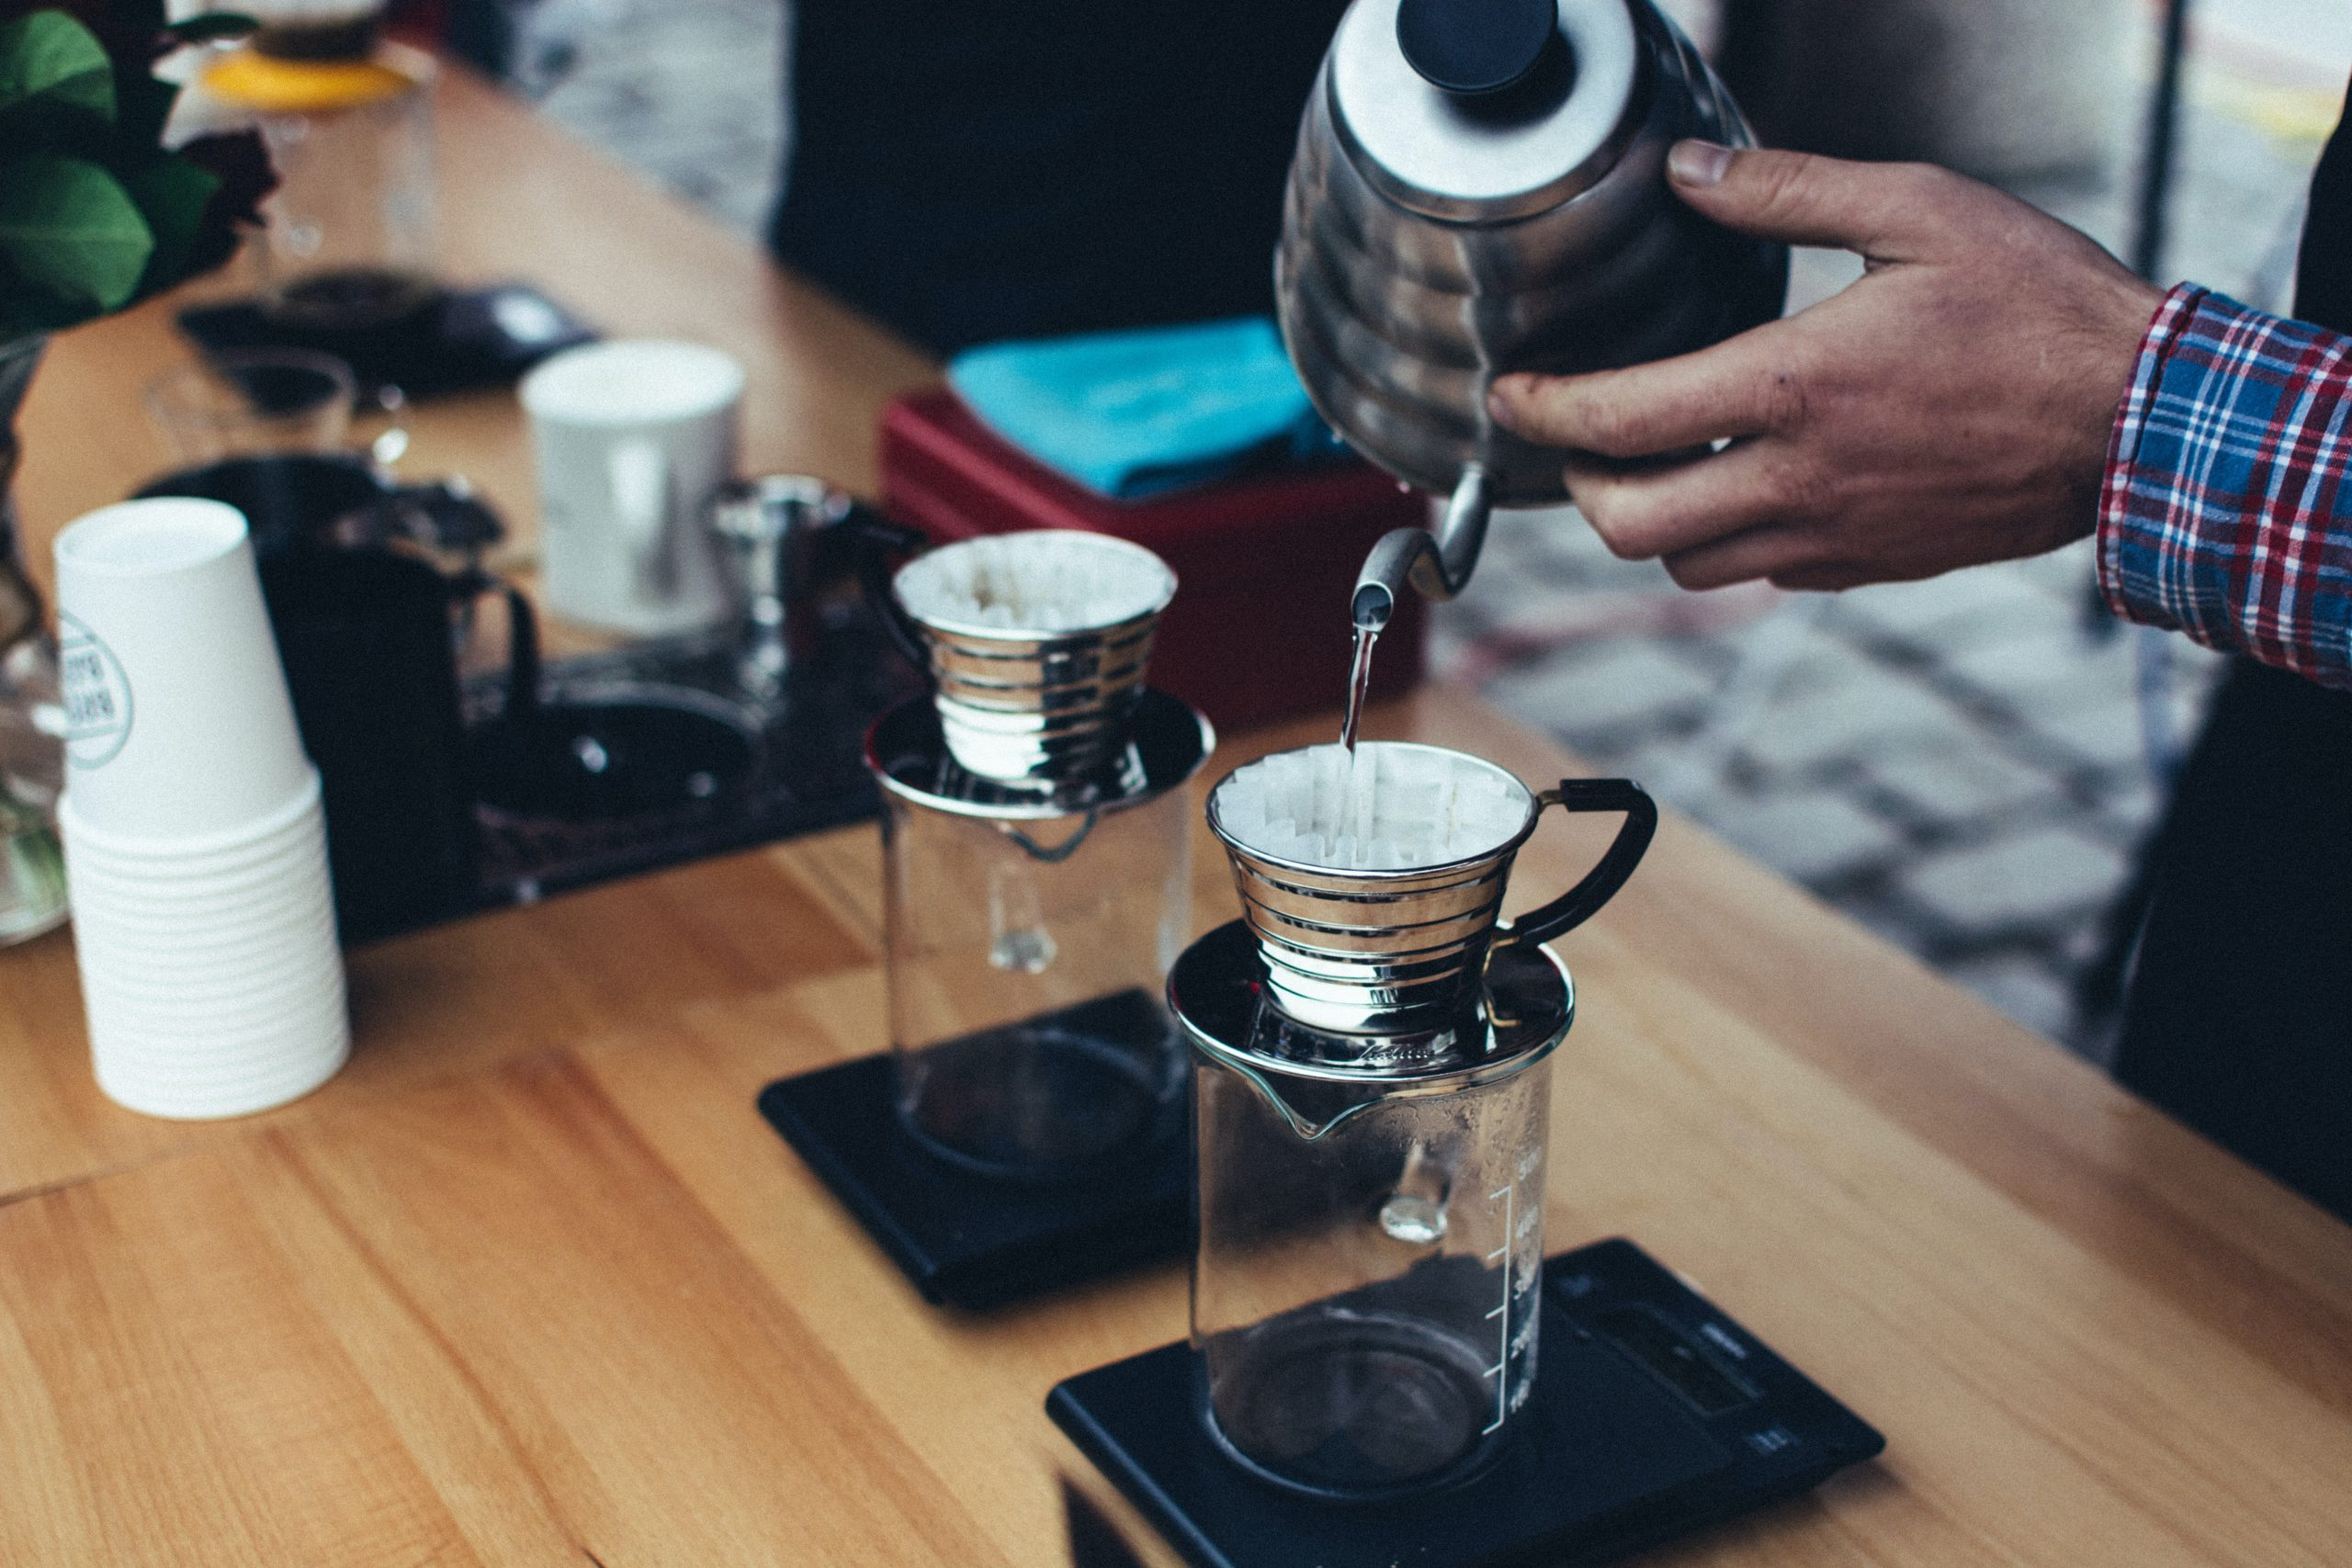 a person pouring water over a filter drip coffee